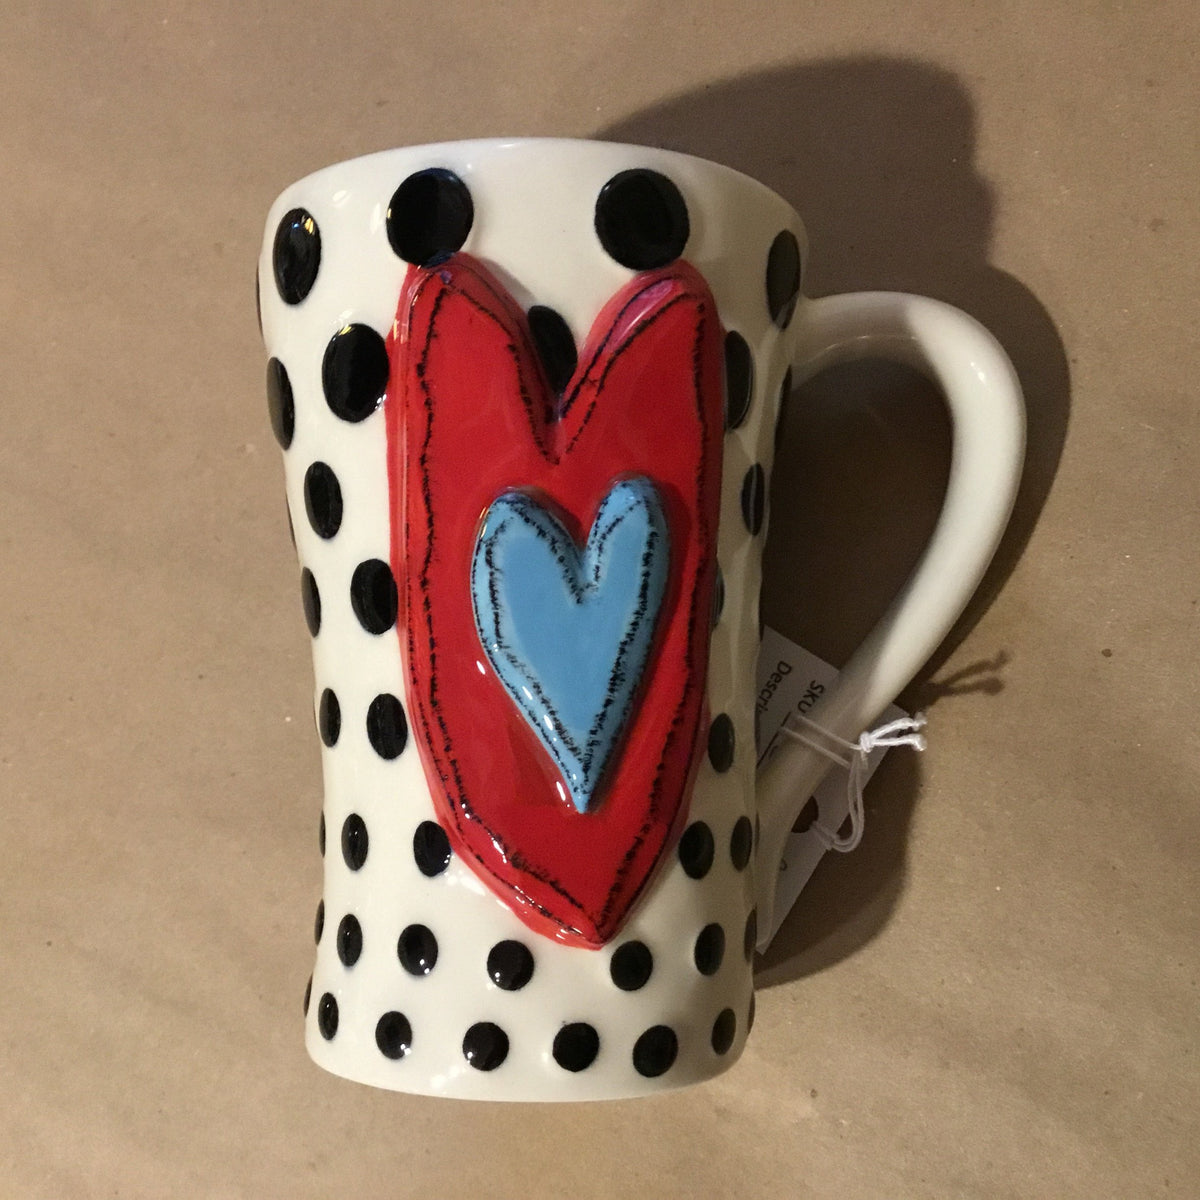 Unique, artful mugs with a cheery heart accent.